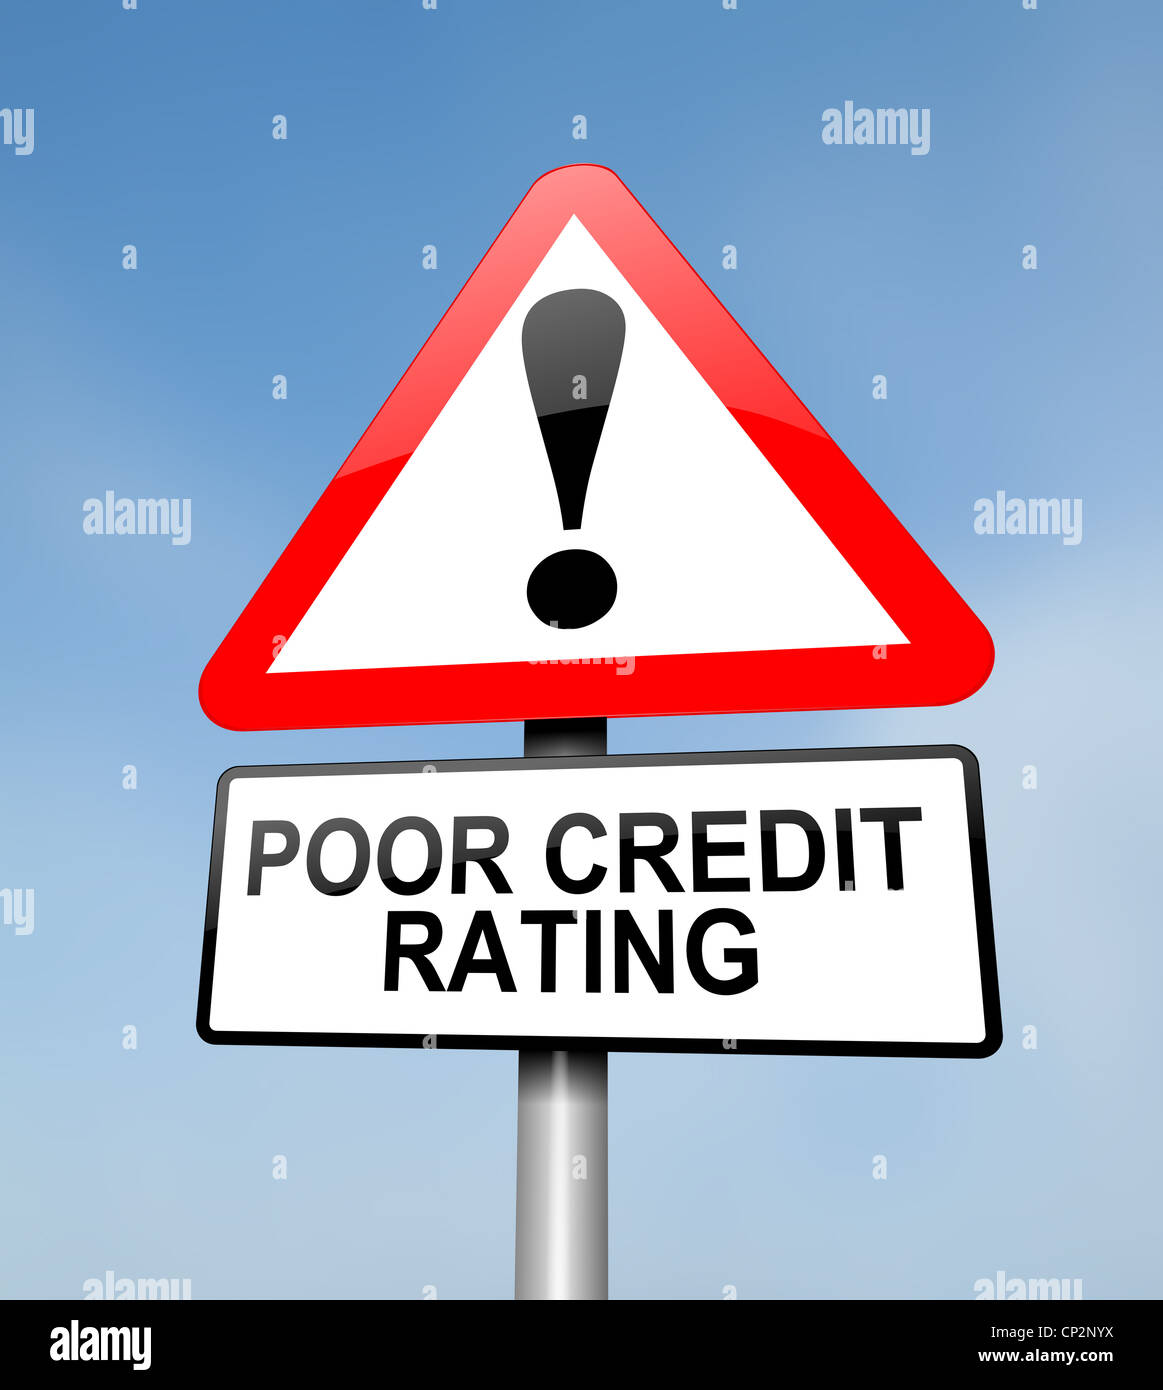 Poor credit rating. Stock Photo